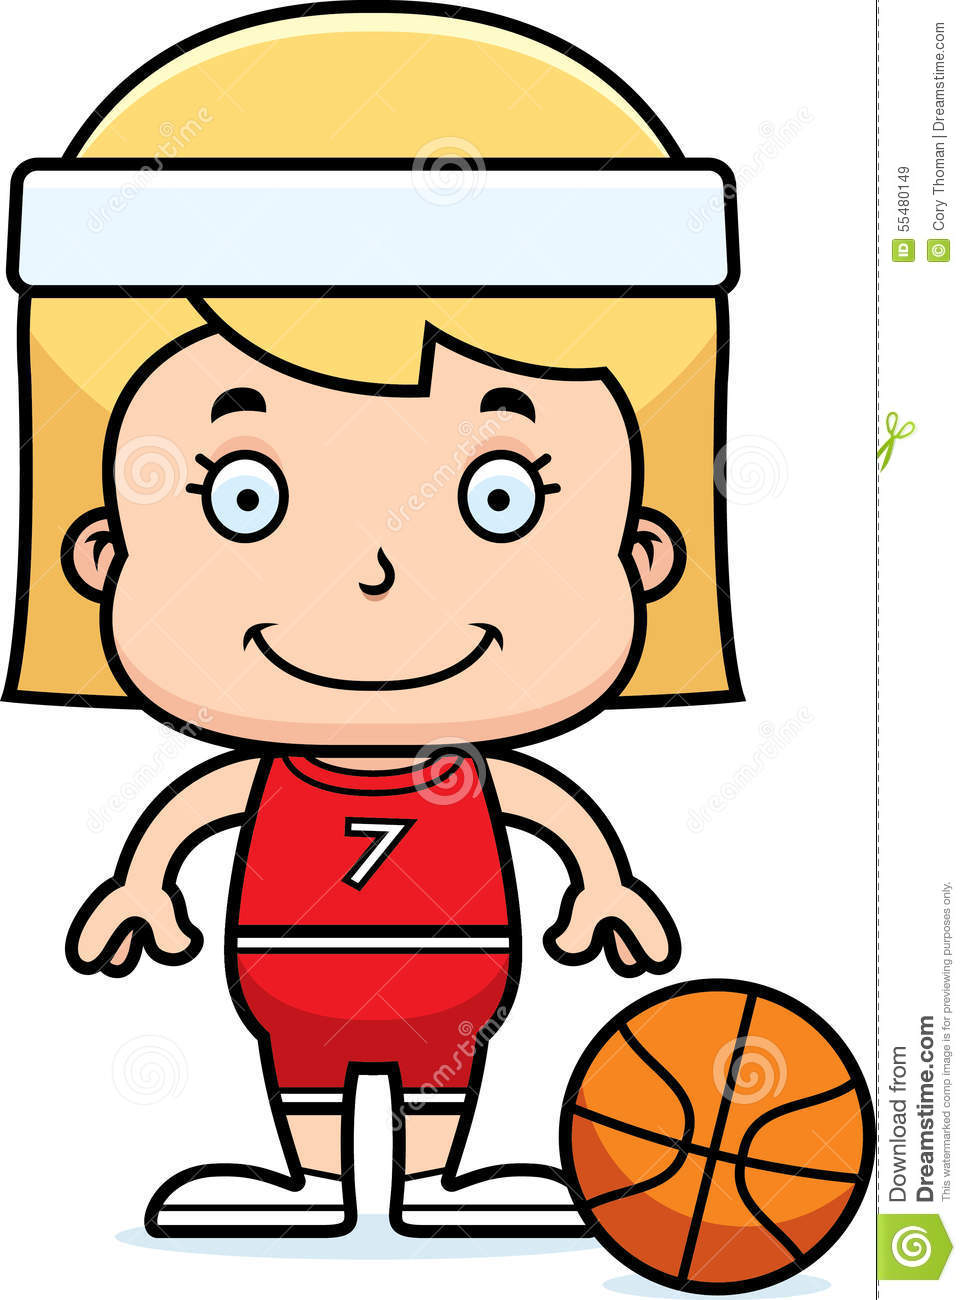 Basketball cartoon girl